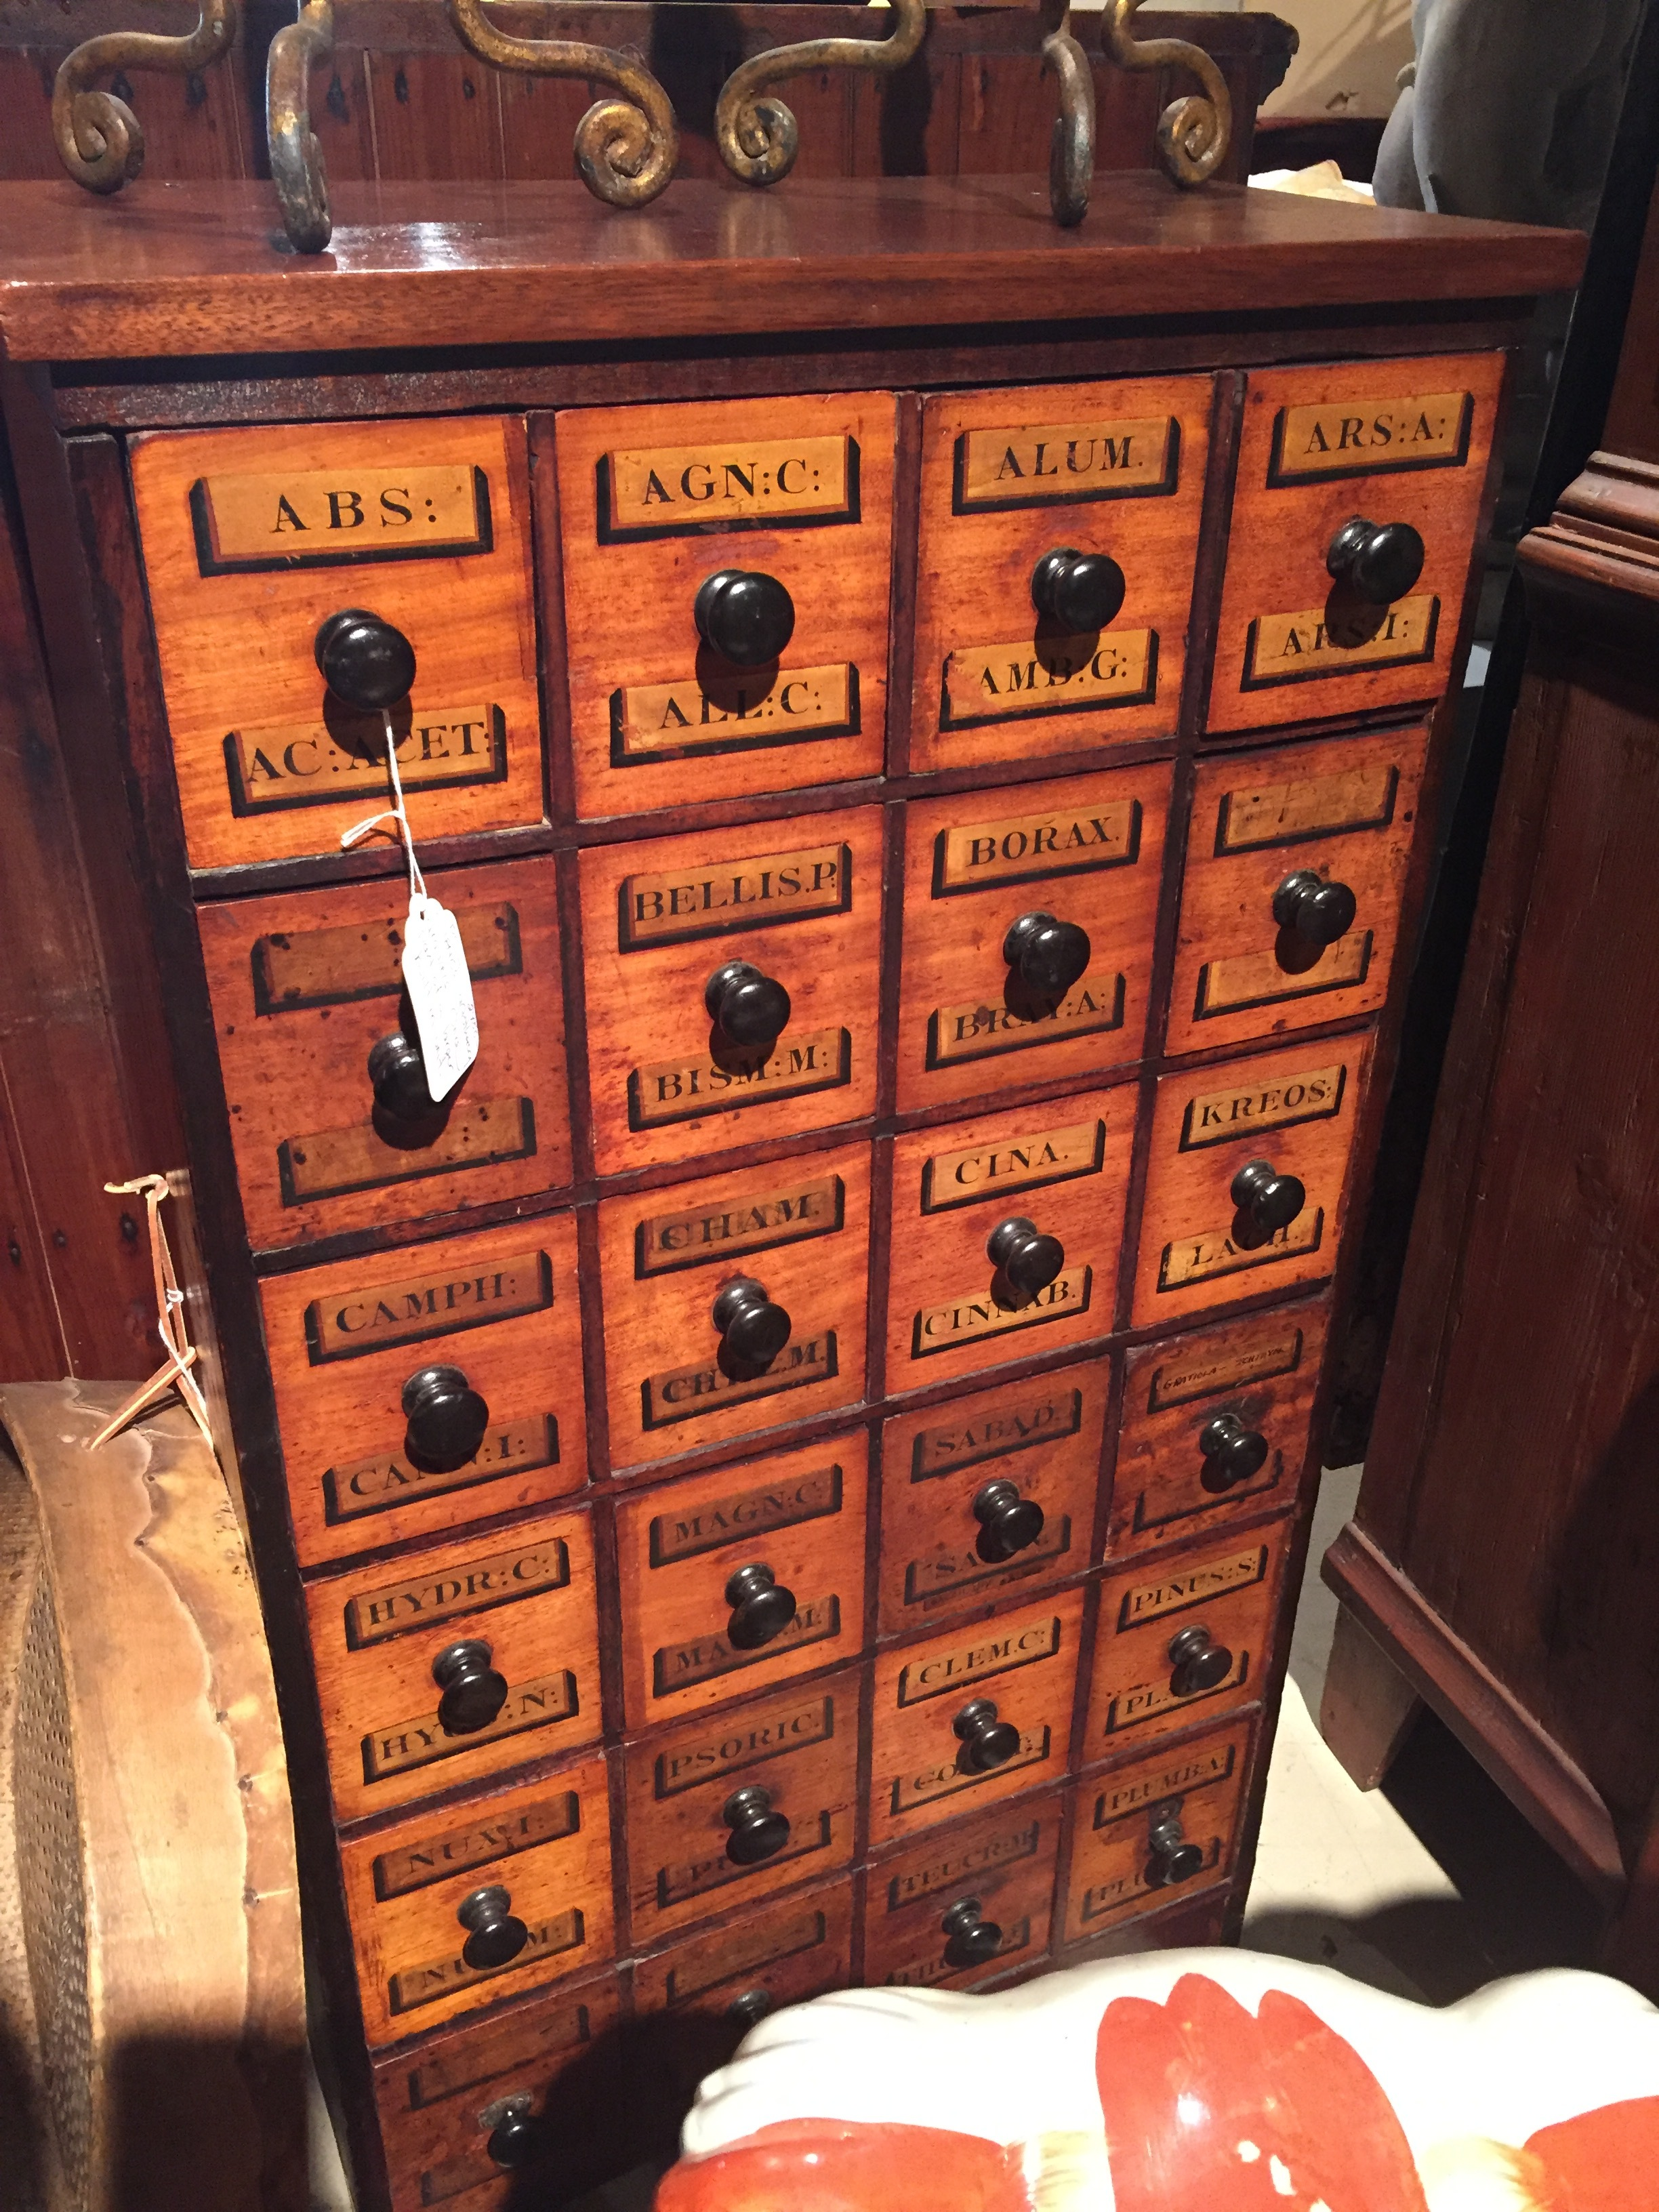 This antique apothecary cabinet was super cool - a great place to store little odds and ends.